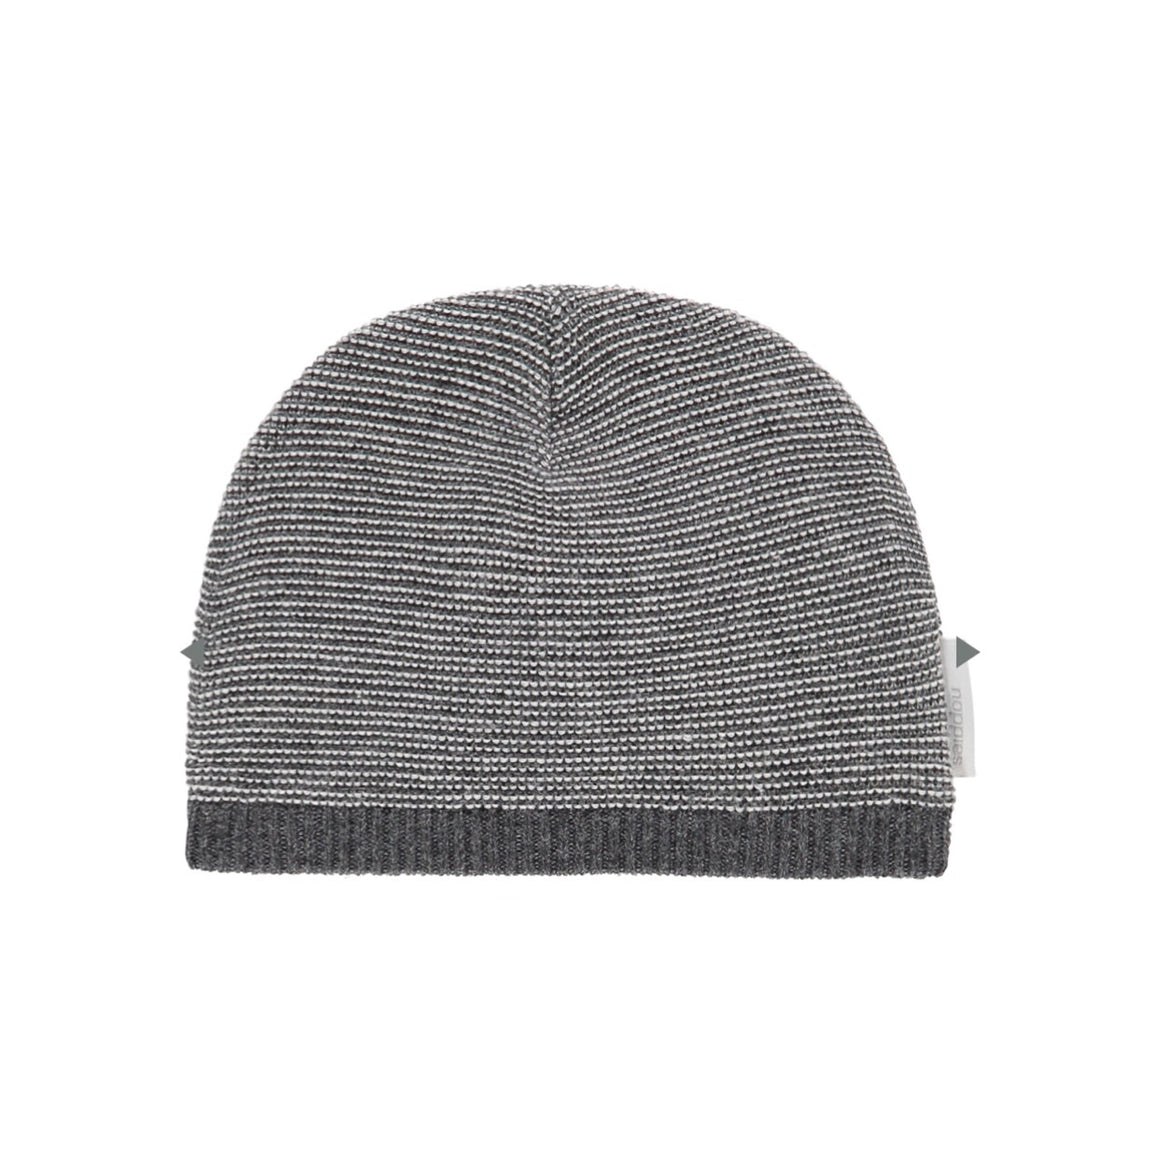 94519 - Noppies - Quebec Organic Unisex Baby Hat - Grey Melange